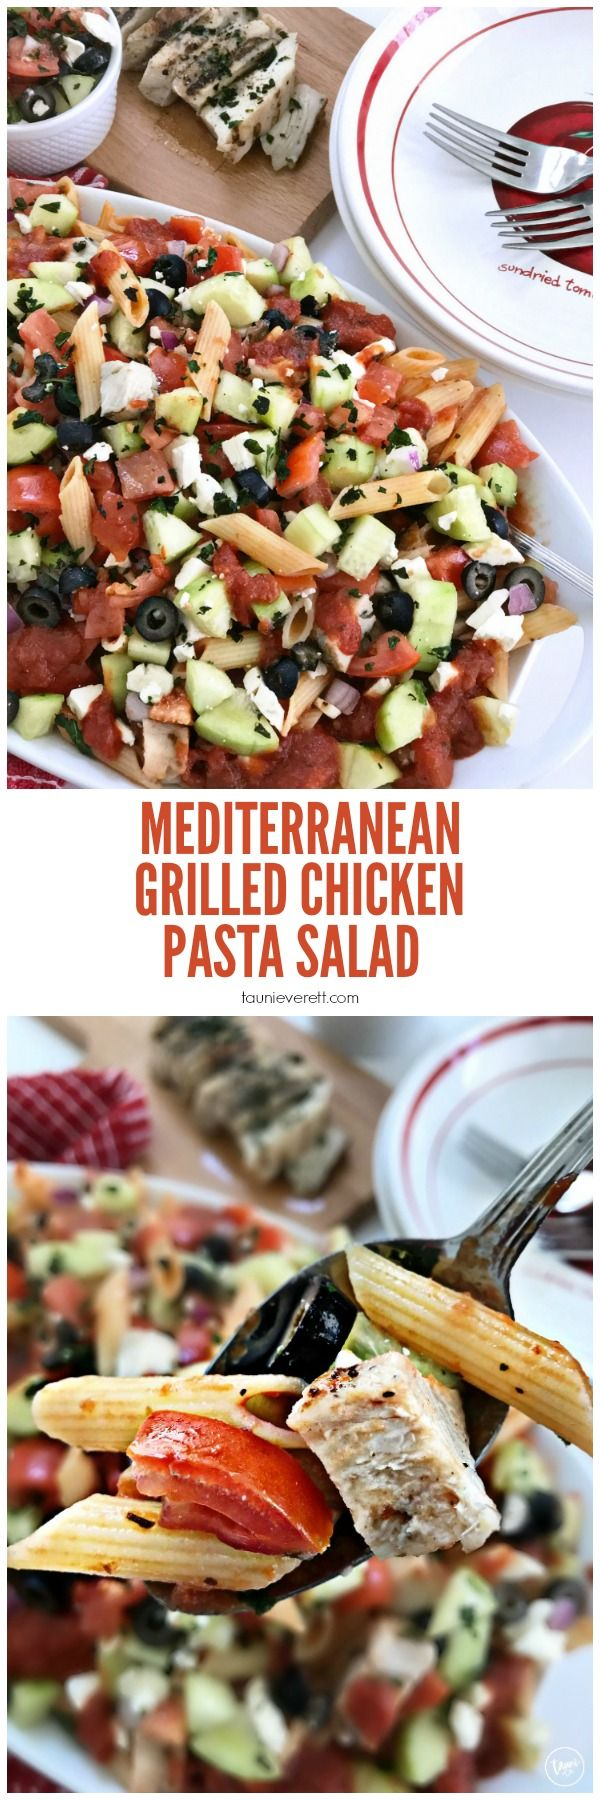 Mediterranean Grilled Chicken Pasta Salad Recipe with @barillausa. BONUS: It's best served cold so it can be made ahead for busy weeknights! For every box of Barilla Blue Box pasta purchase at Walmart between 8/10/2017 – 10/31/2017, Barilla will donate $1 to No Kid Hungry, up to $50,000. AD #BarillaUS #NoKidHungry